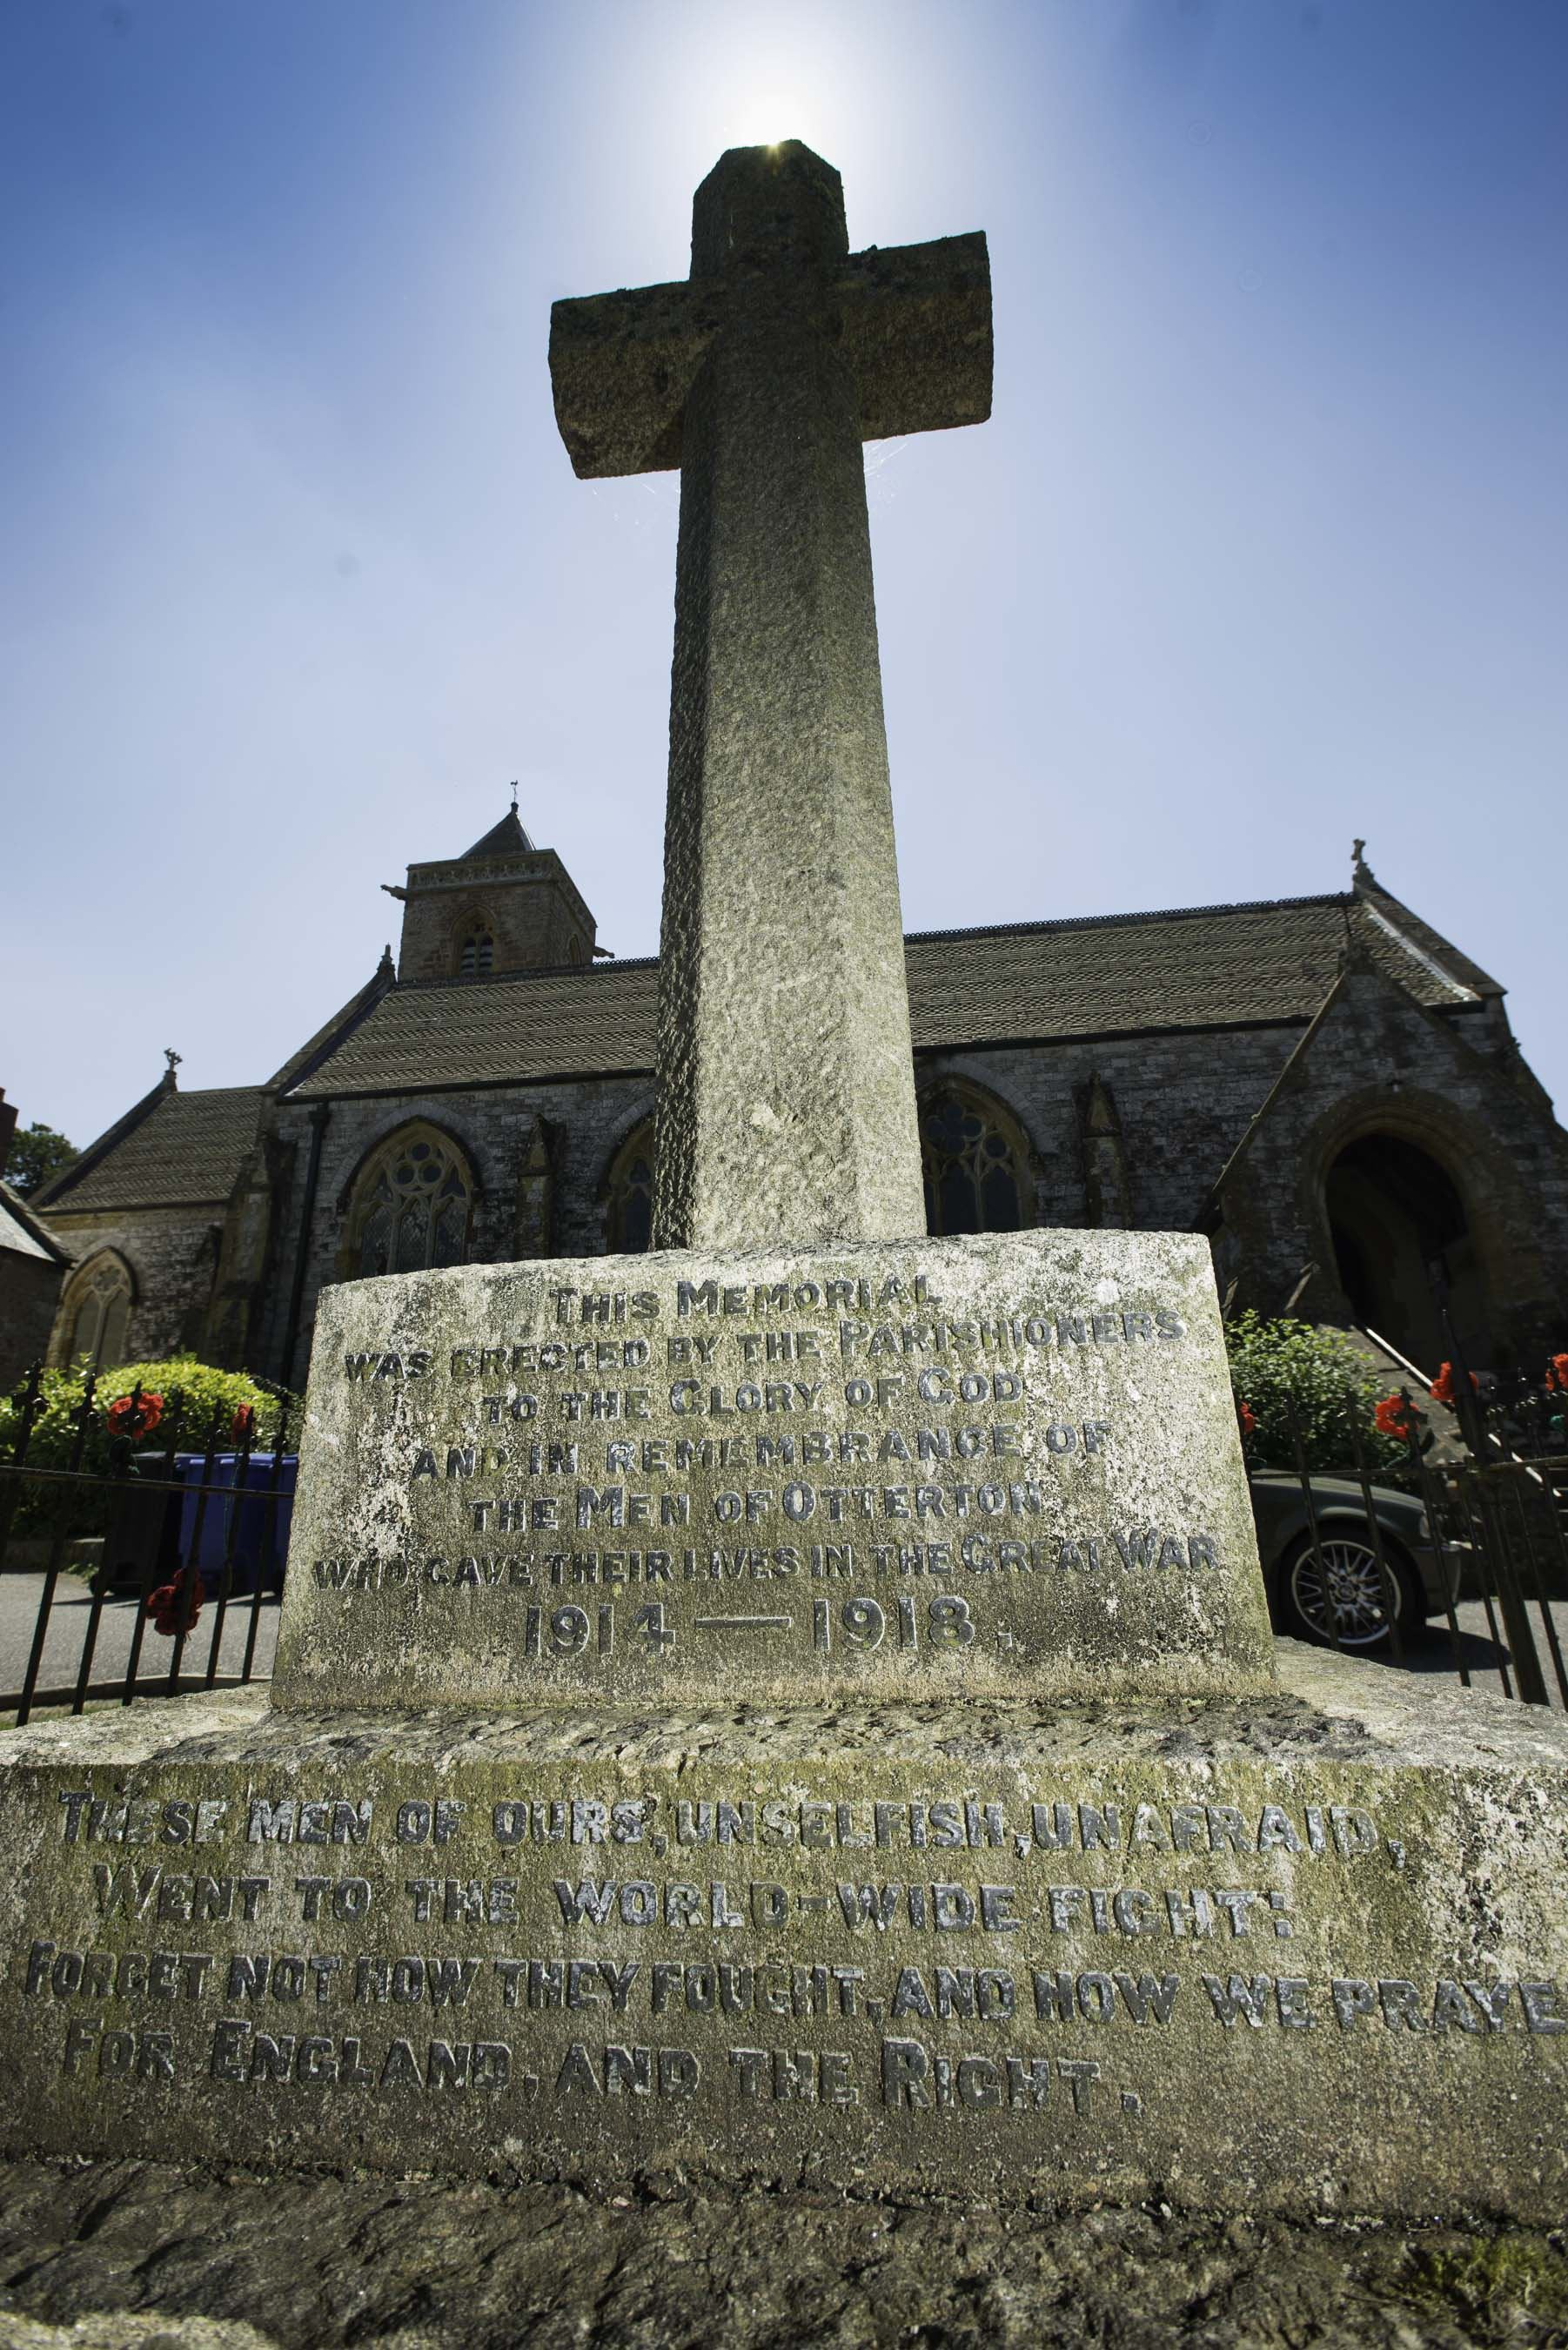 Otterton Memorial Cross